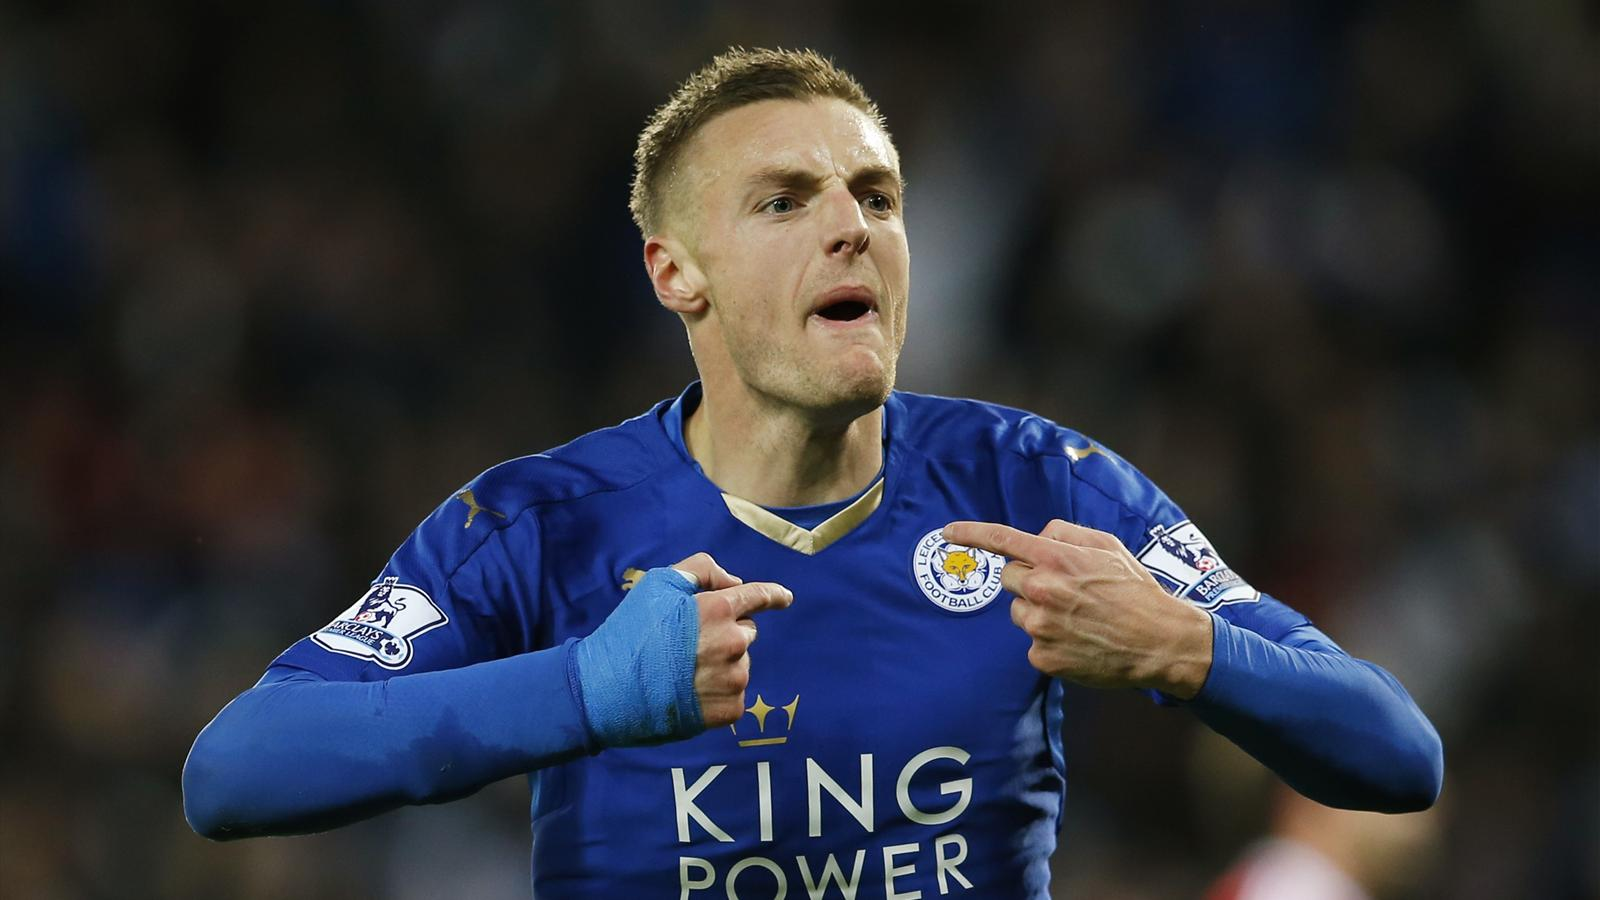 Leicester City s Jamie Vardy and the other great scoring streaks